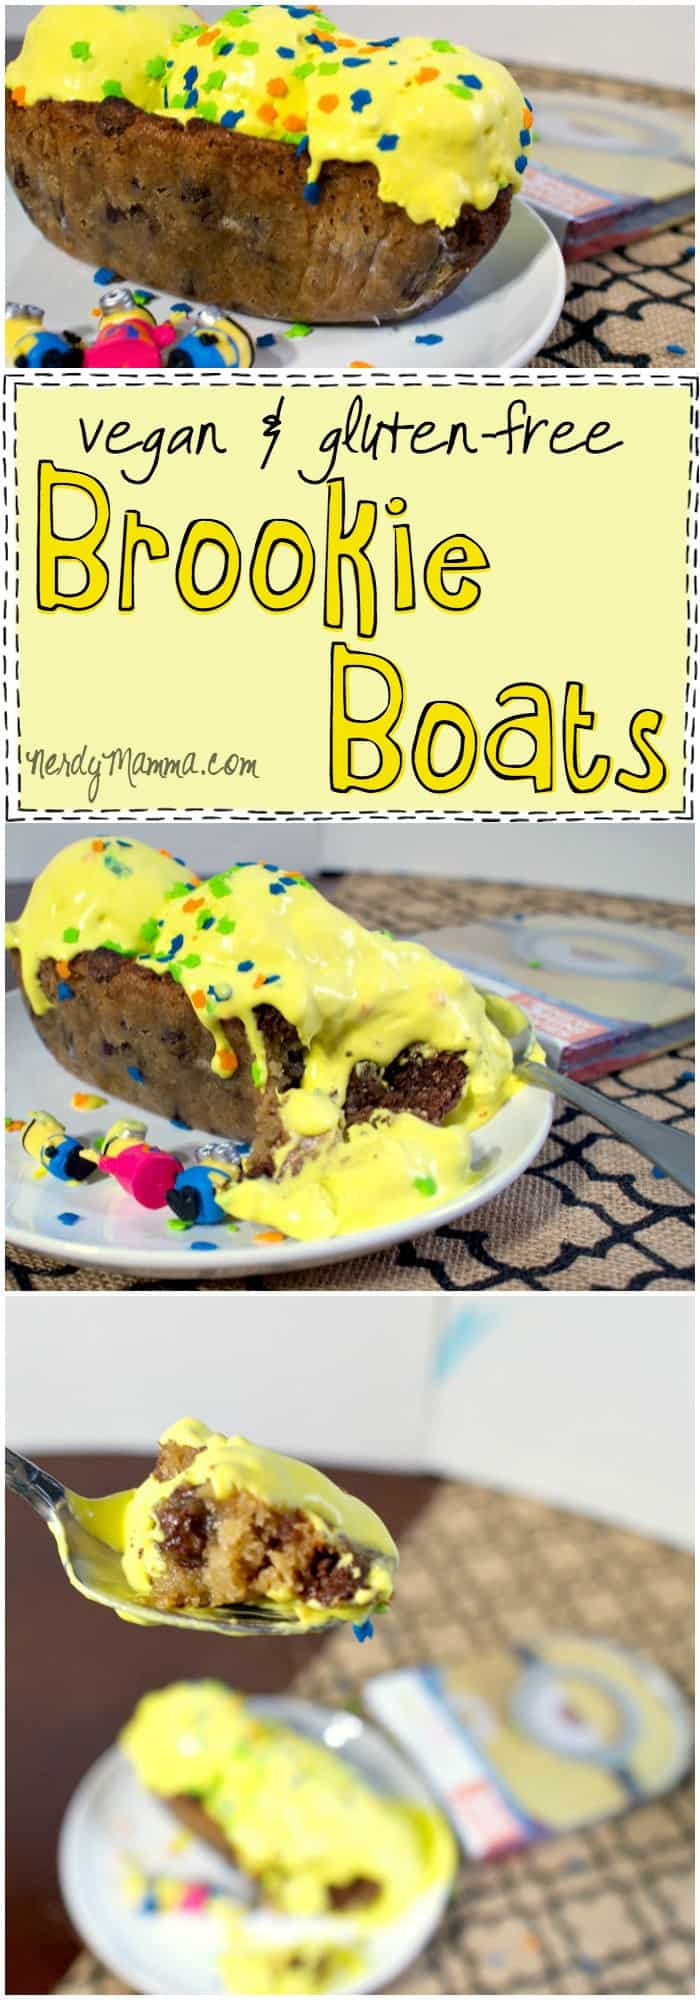 I made these awesome vegan and gluten-free brookie boats for the Minion's movie DVD release...so good...so awesomely yummy...